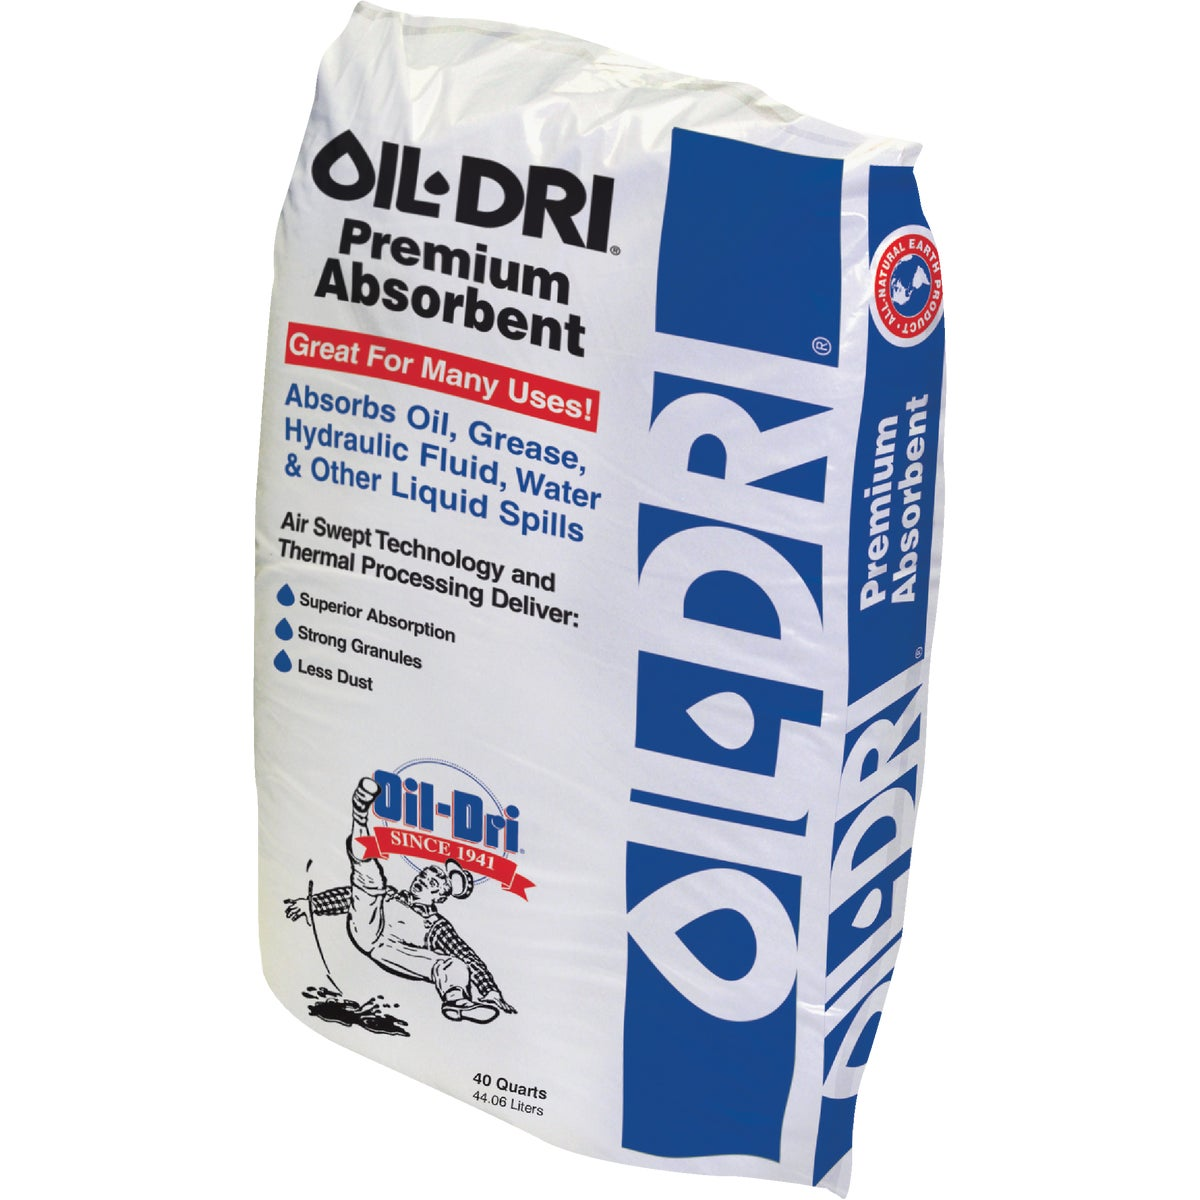 50LB OIL DRI ABSORBENT